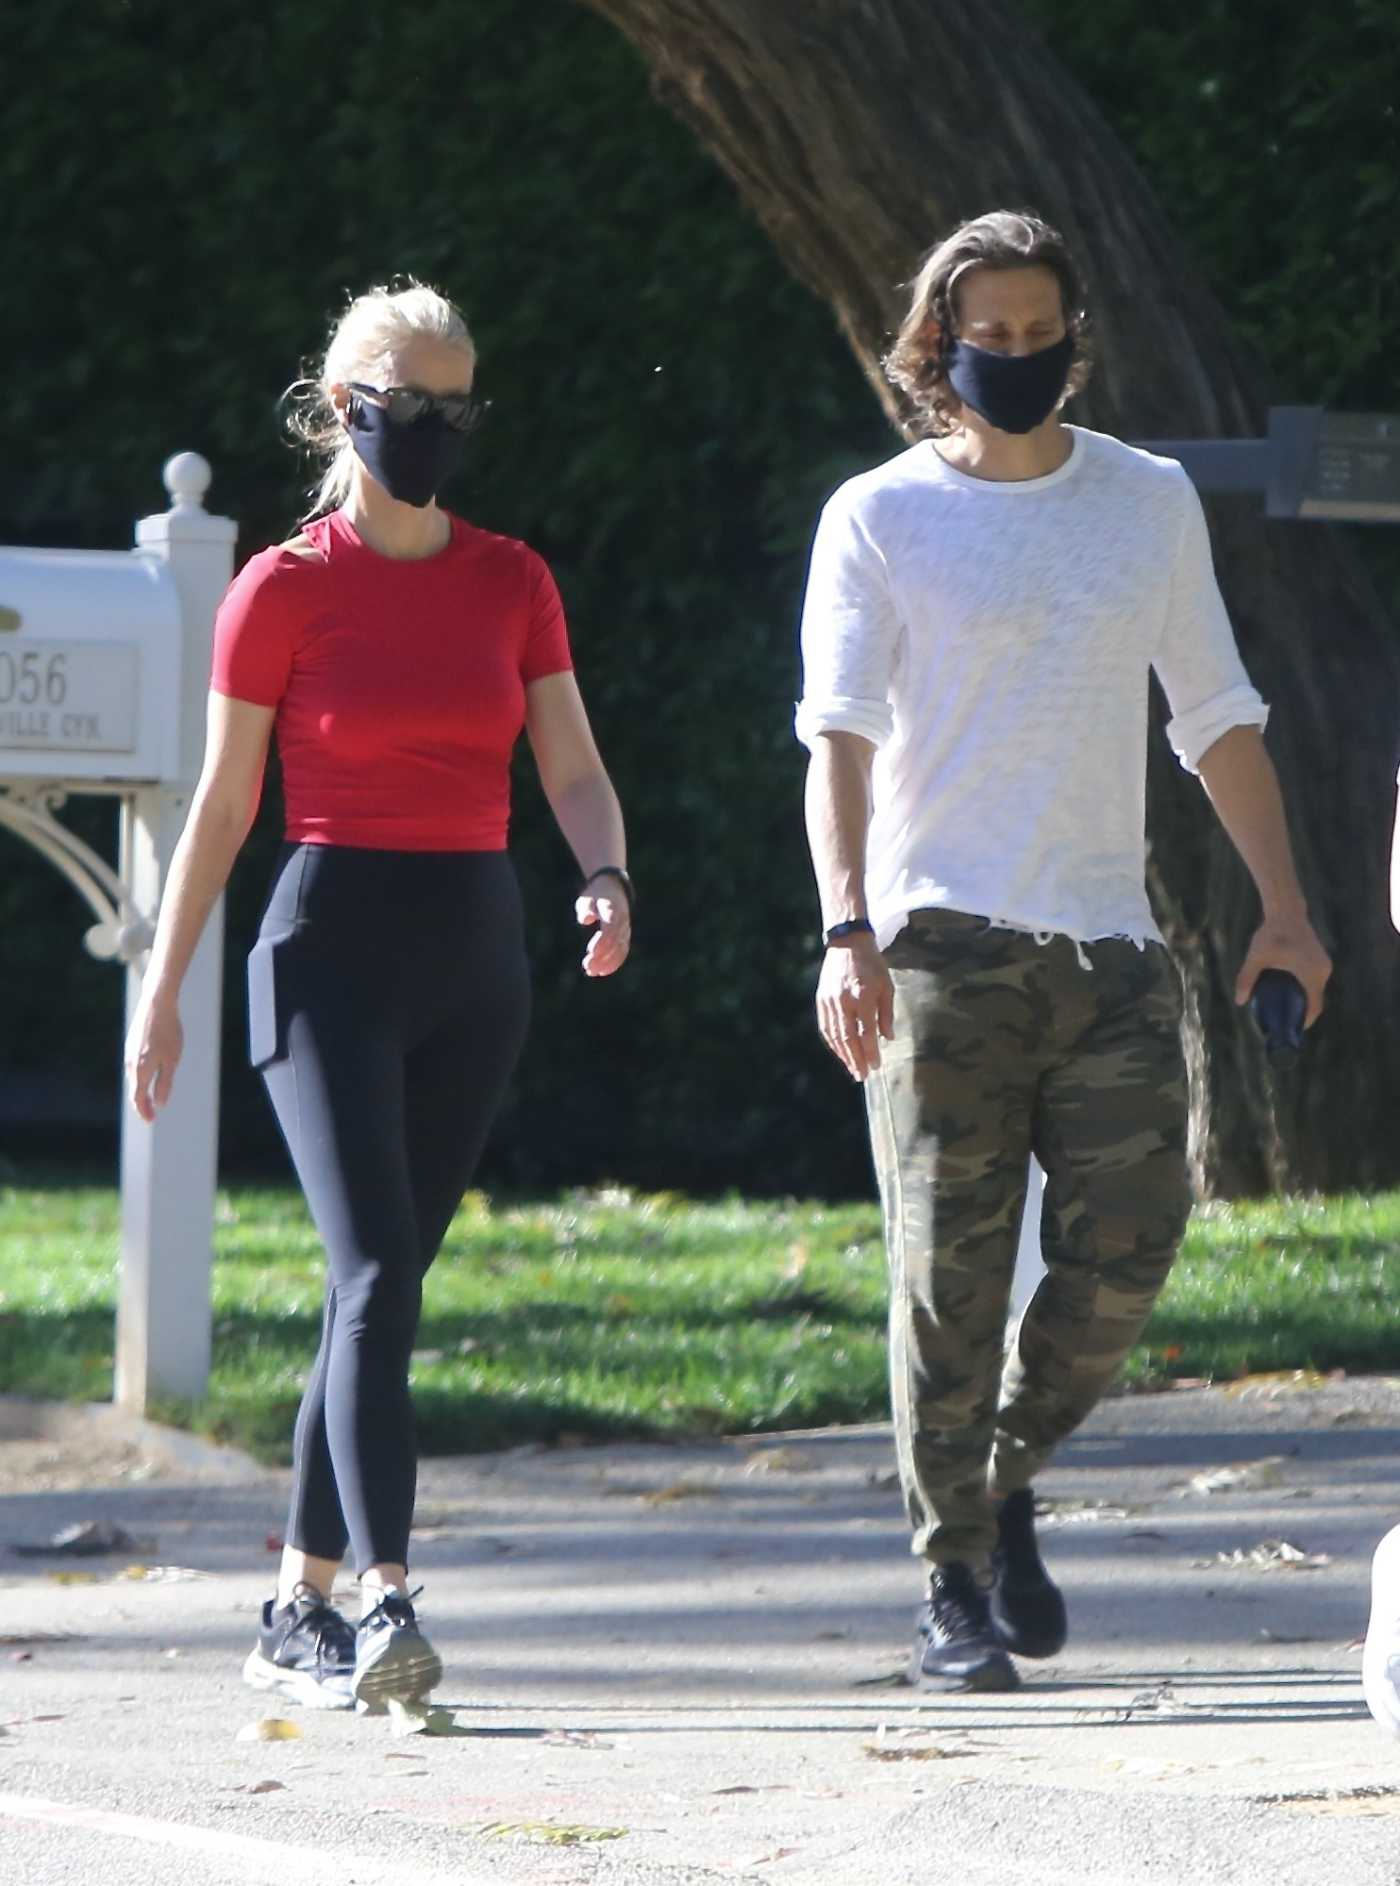 Gwyneth Paltrow in a Red Top Was Seen Out with Her Husband Brad Falchuk in Pacific Palisades 05/02/2020